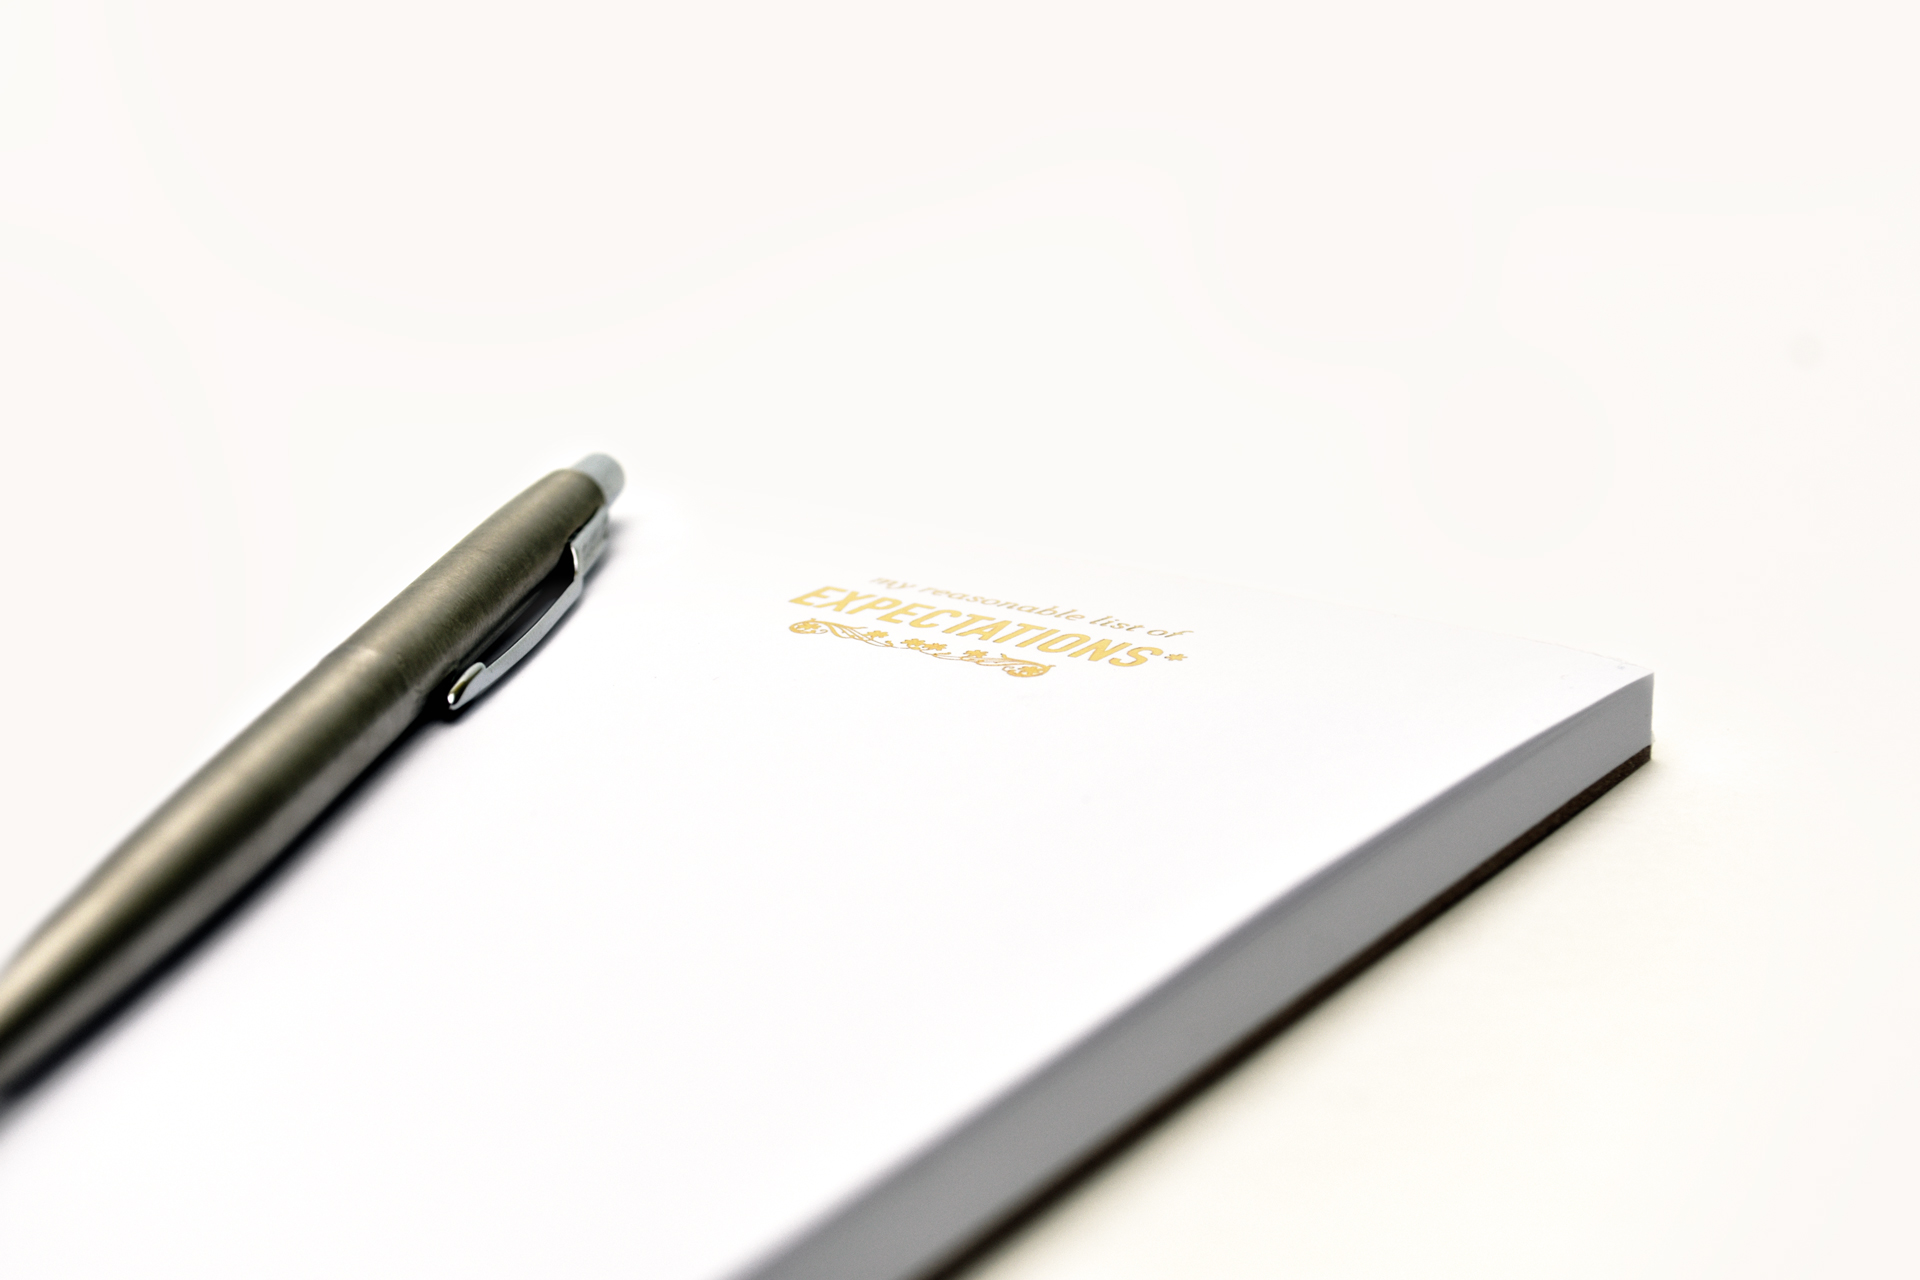 Notepad in gold-foil - Record Thoughts and RemindersElegant, foil-stamped notepad is designed to quickly reflect thoughts, feelings, and reminders.